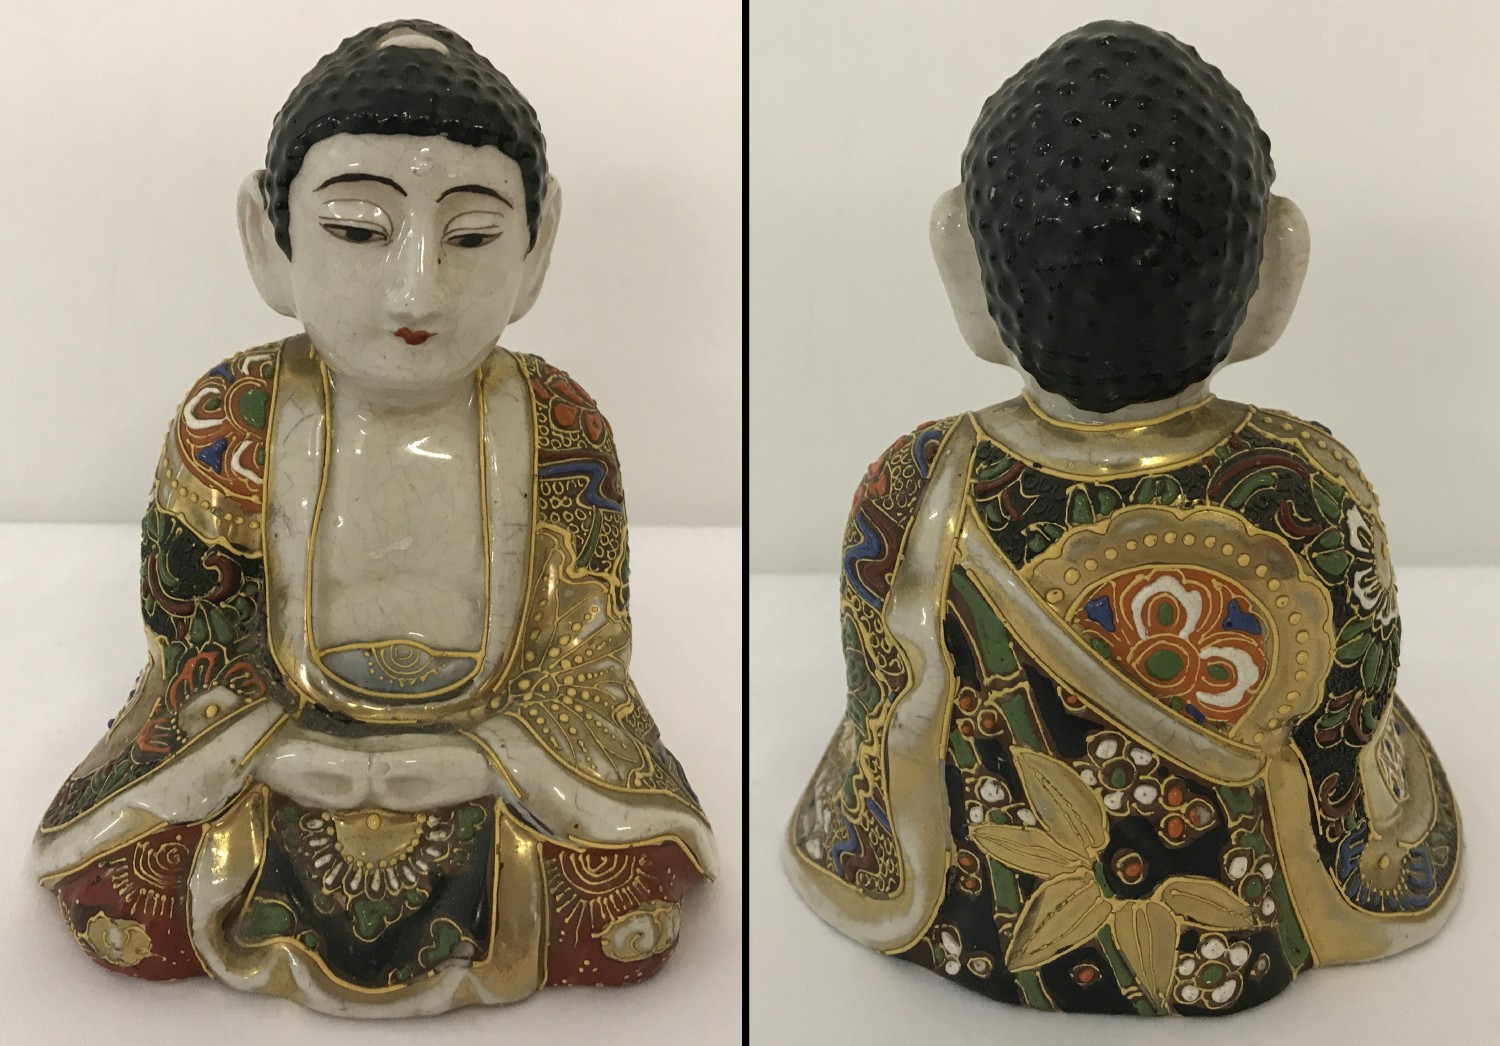 A ceramic sitting Buddha figure with gilt and hand painted floral decoration to his robe.